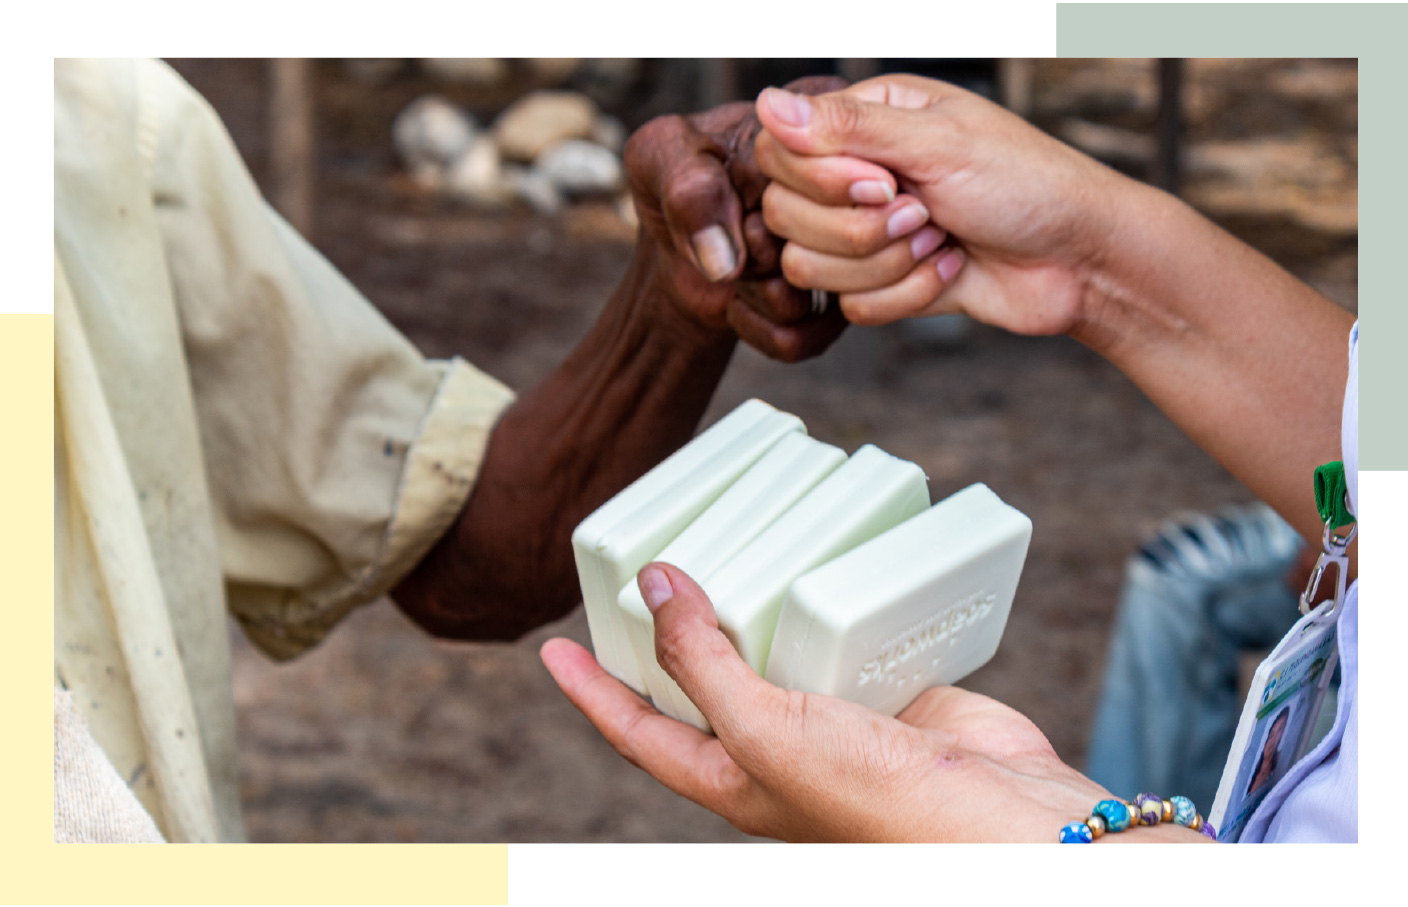 Soap aid being distributed by staff member to vulnerable communities